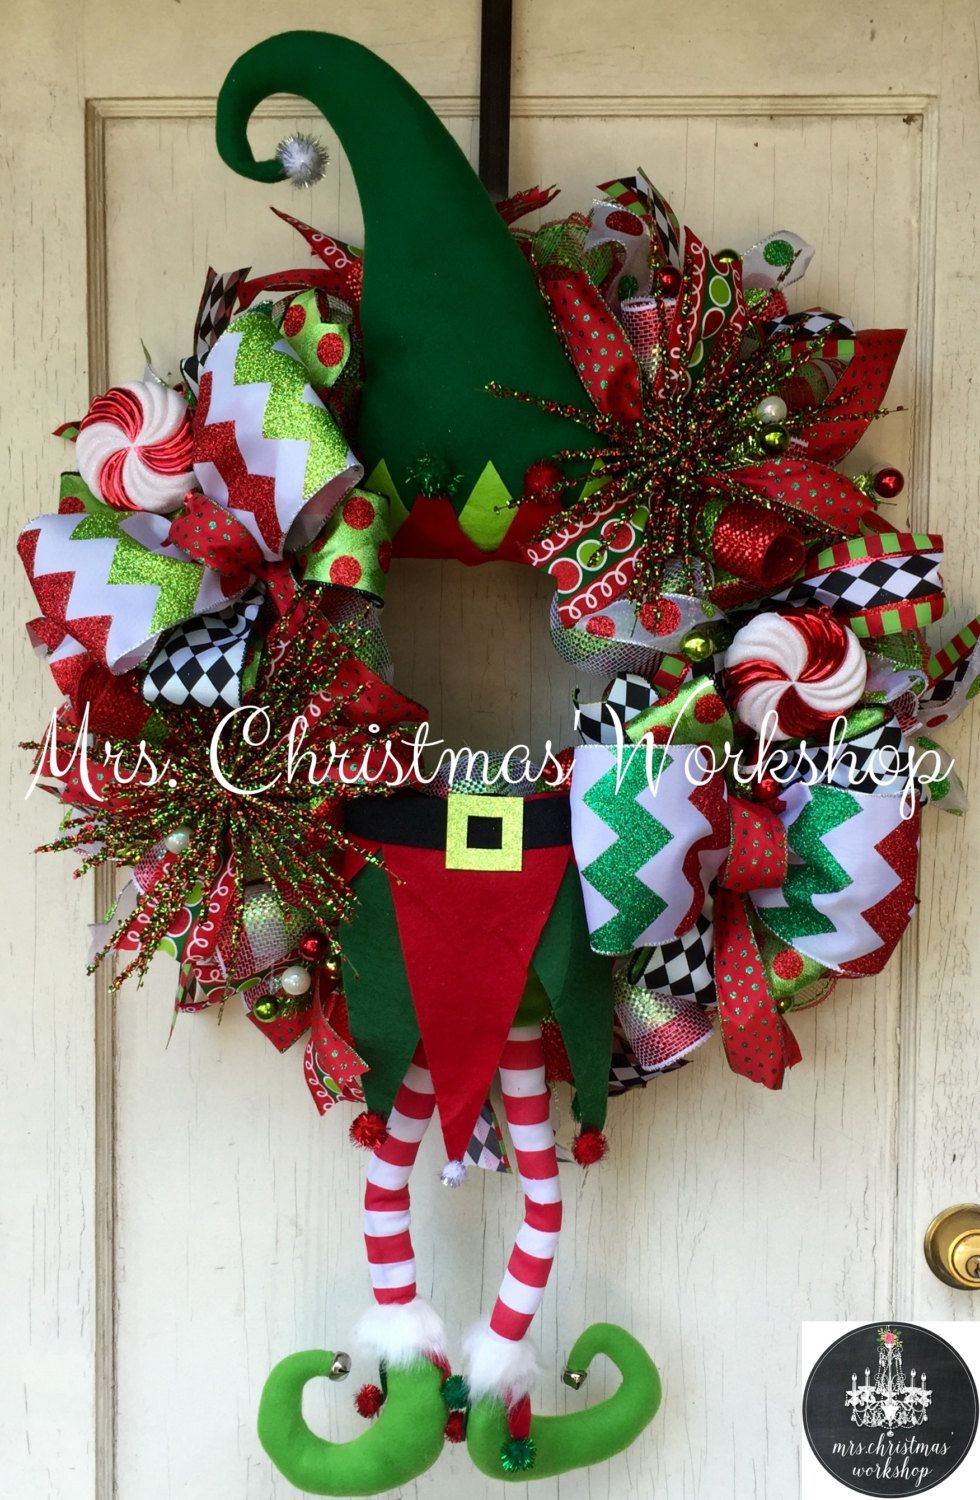 This Is A Christmas Wreath Made With Premium Deco Mesh It Features A Red And Green Elf This Is A Christmas Wreaths Diy Christmas Wreaths Christmas Ornaments